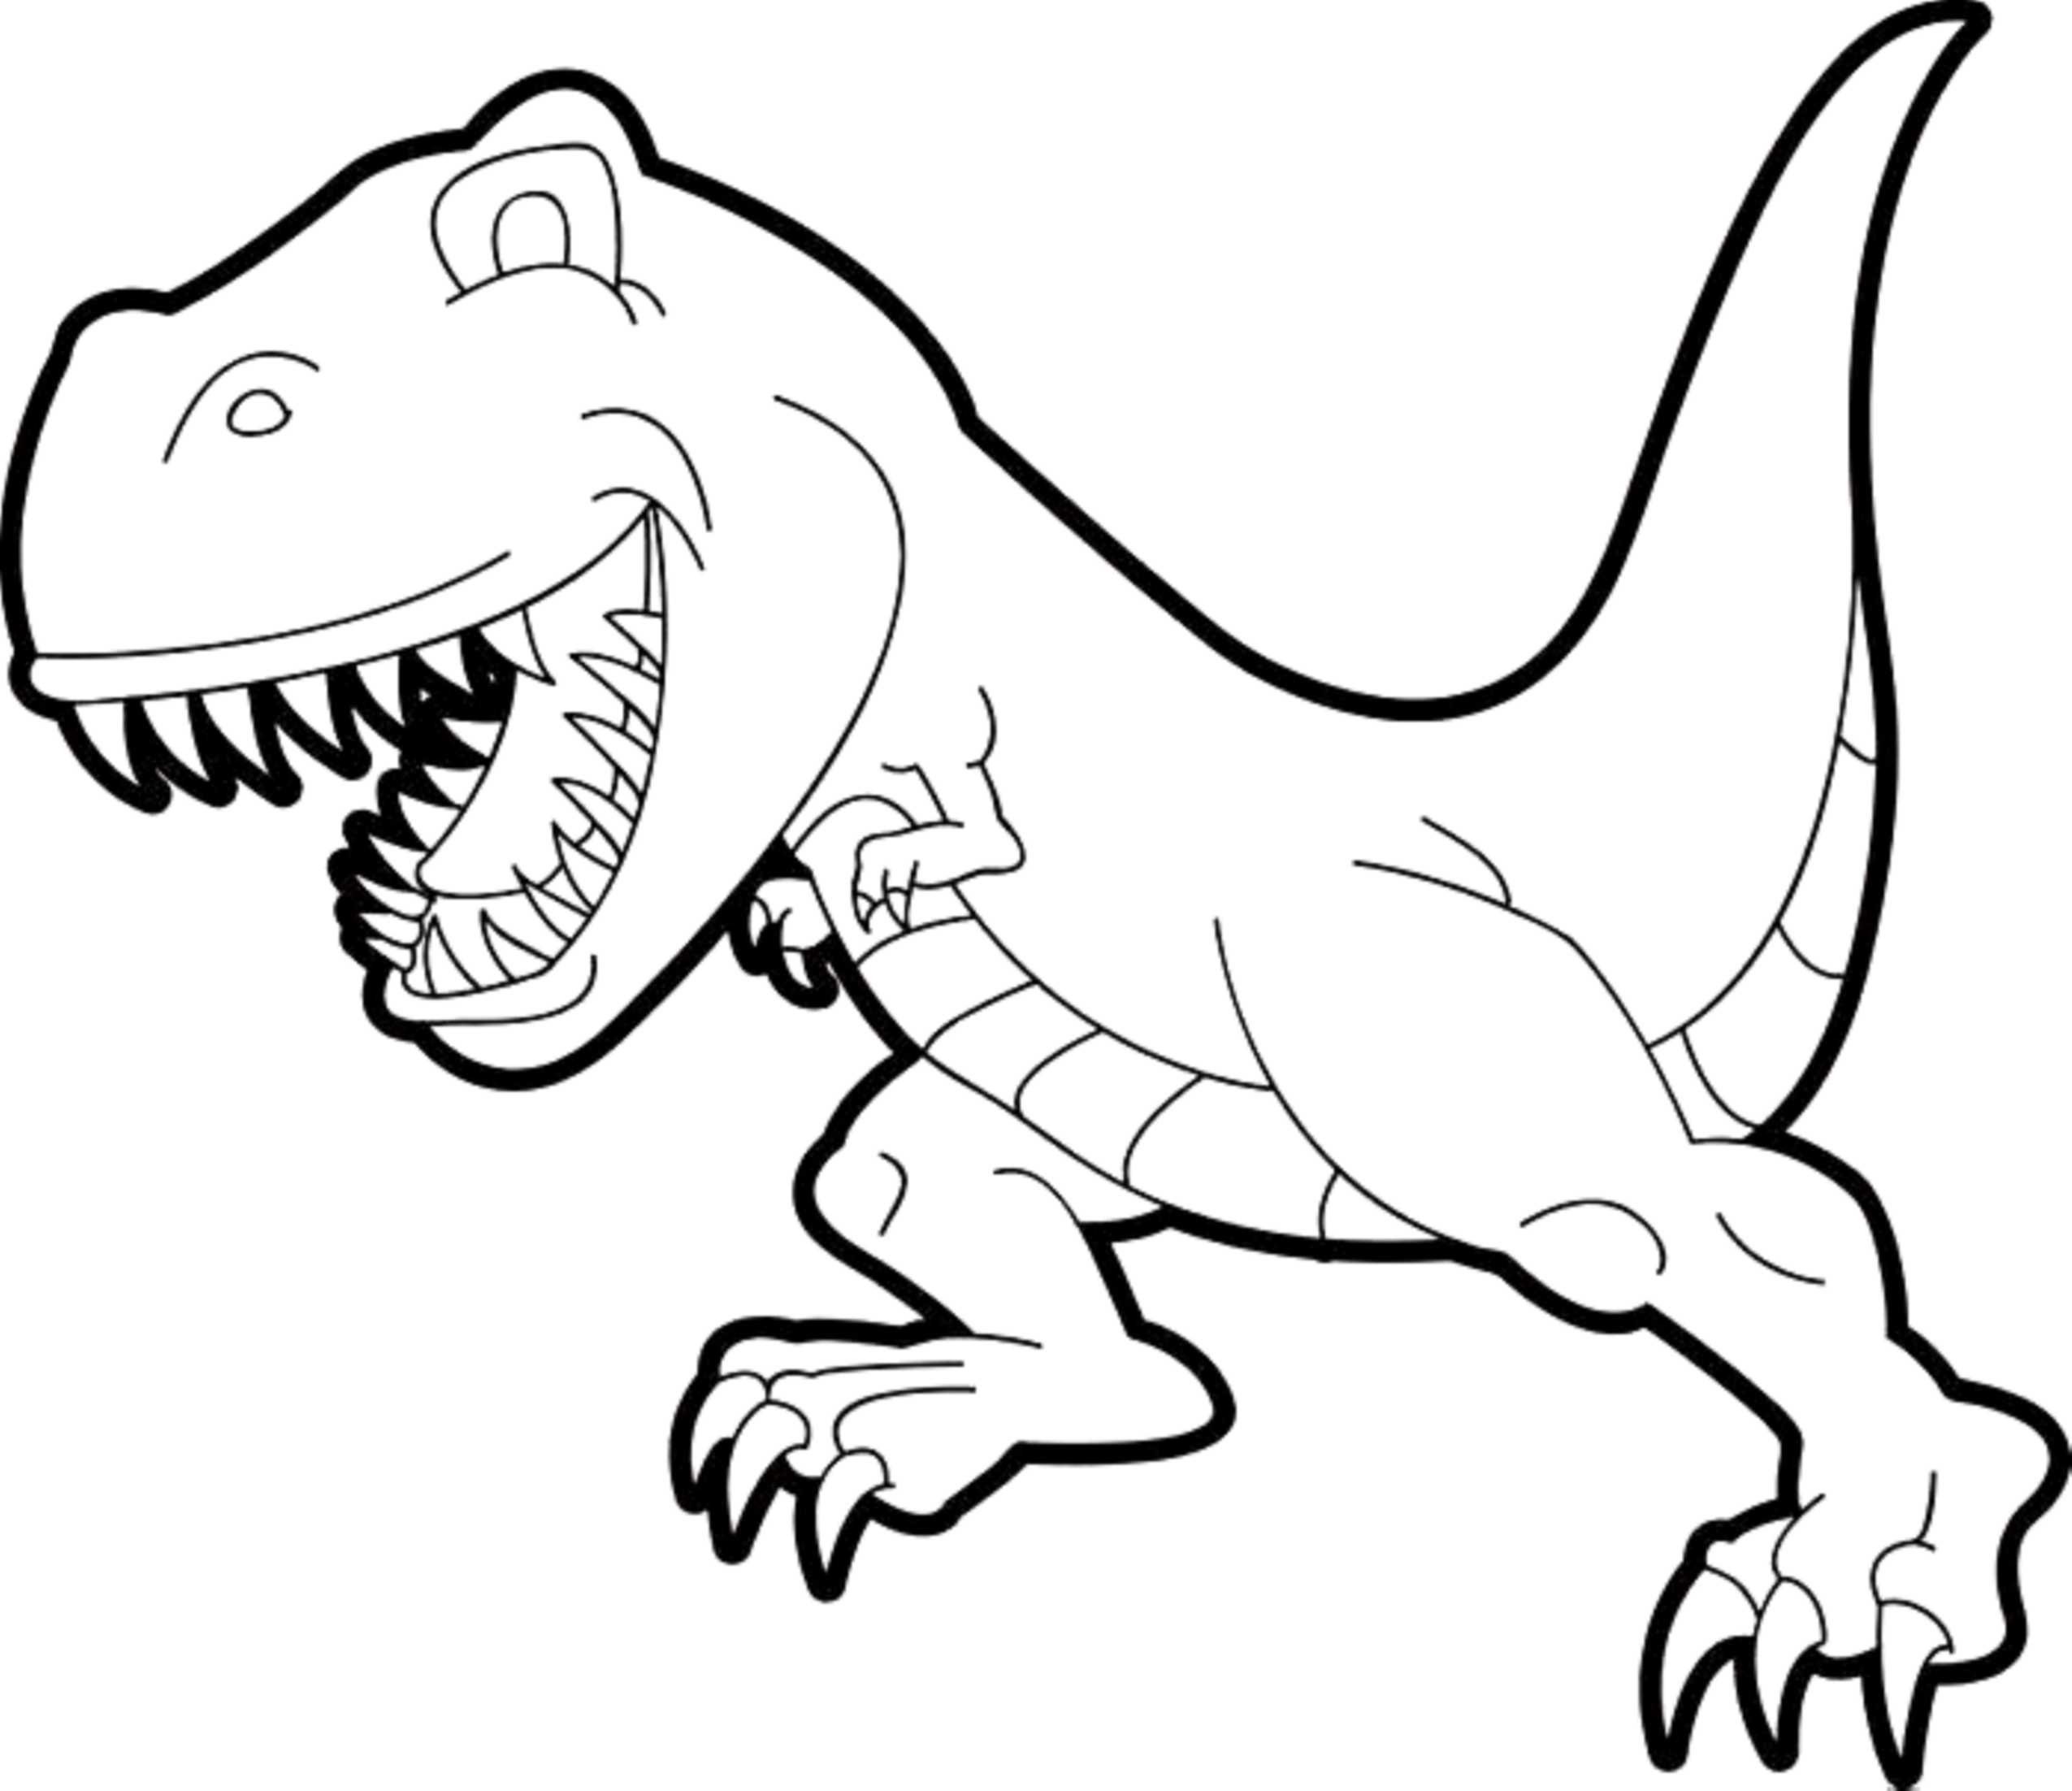 dinosaurs pictures to color coloring pages dinosaur free printable coloring pages pictures to color dinosaurs